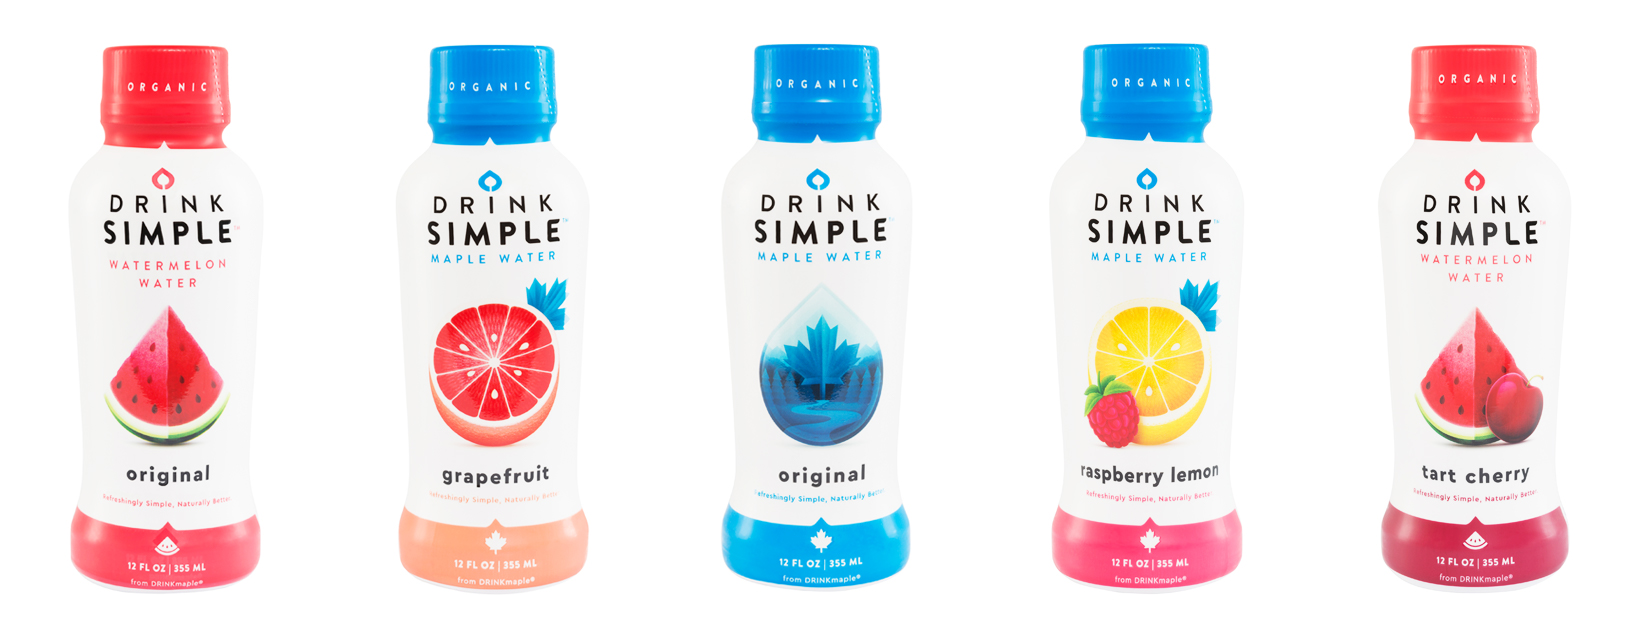 Drink Simple  OUR MAPLE WATER     Maple water is water tapped from maple trees that is packed with nutrients that fuel the tree, and can fuel you! It's pure refreshing water that has a hint of maple taste. It's naturally alkaline and contains electrolytes, antioxidants, and prebiotics. Maple water is more hydrating than water with 1/2 the sugar of coconut water.  OUR WATERMELON WATER     Our Watermelon Water is the juice from organic watermelons that we filter for a smooth natural taste. Nothing else added, extremely high in citrulline, and best of all it tastes like summer in your mouth! No added sugar, with less sugar than most juices, sports drinks, and soda. It's the healthy alternative.